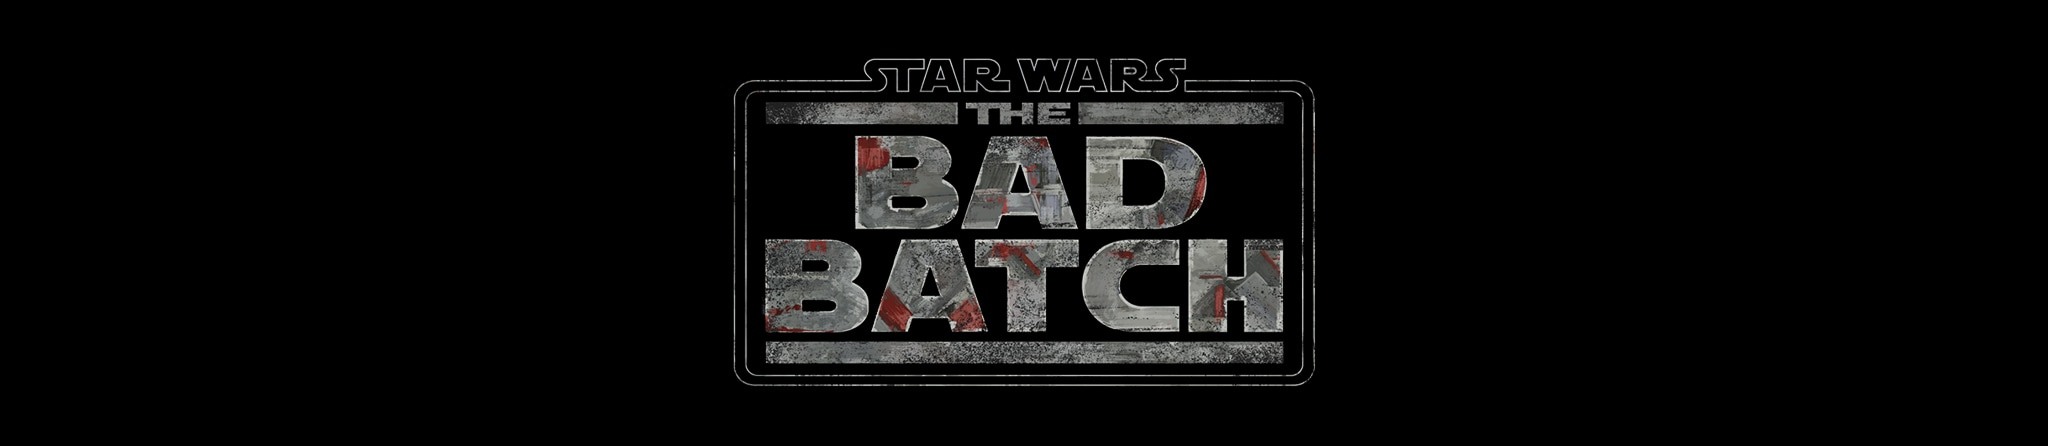 Star Wars | The Bad Batch